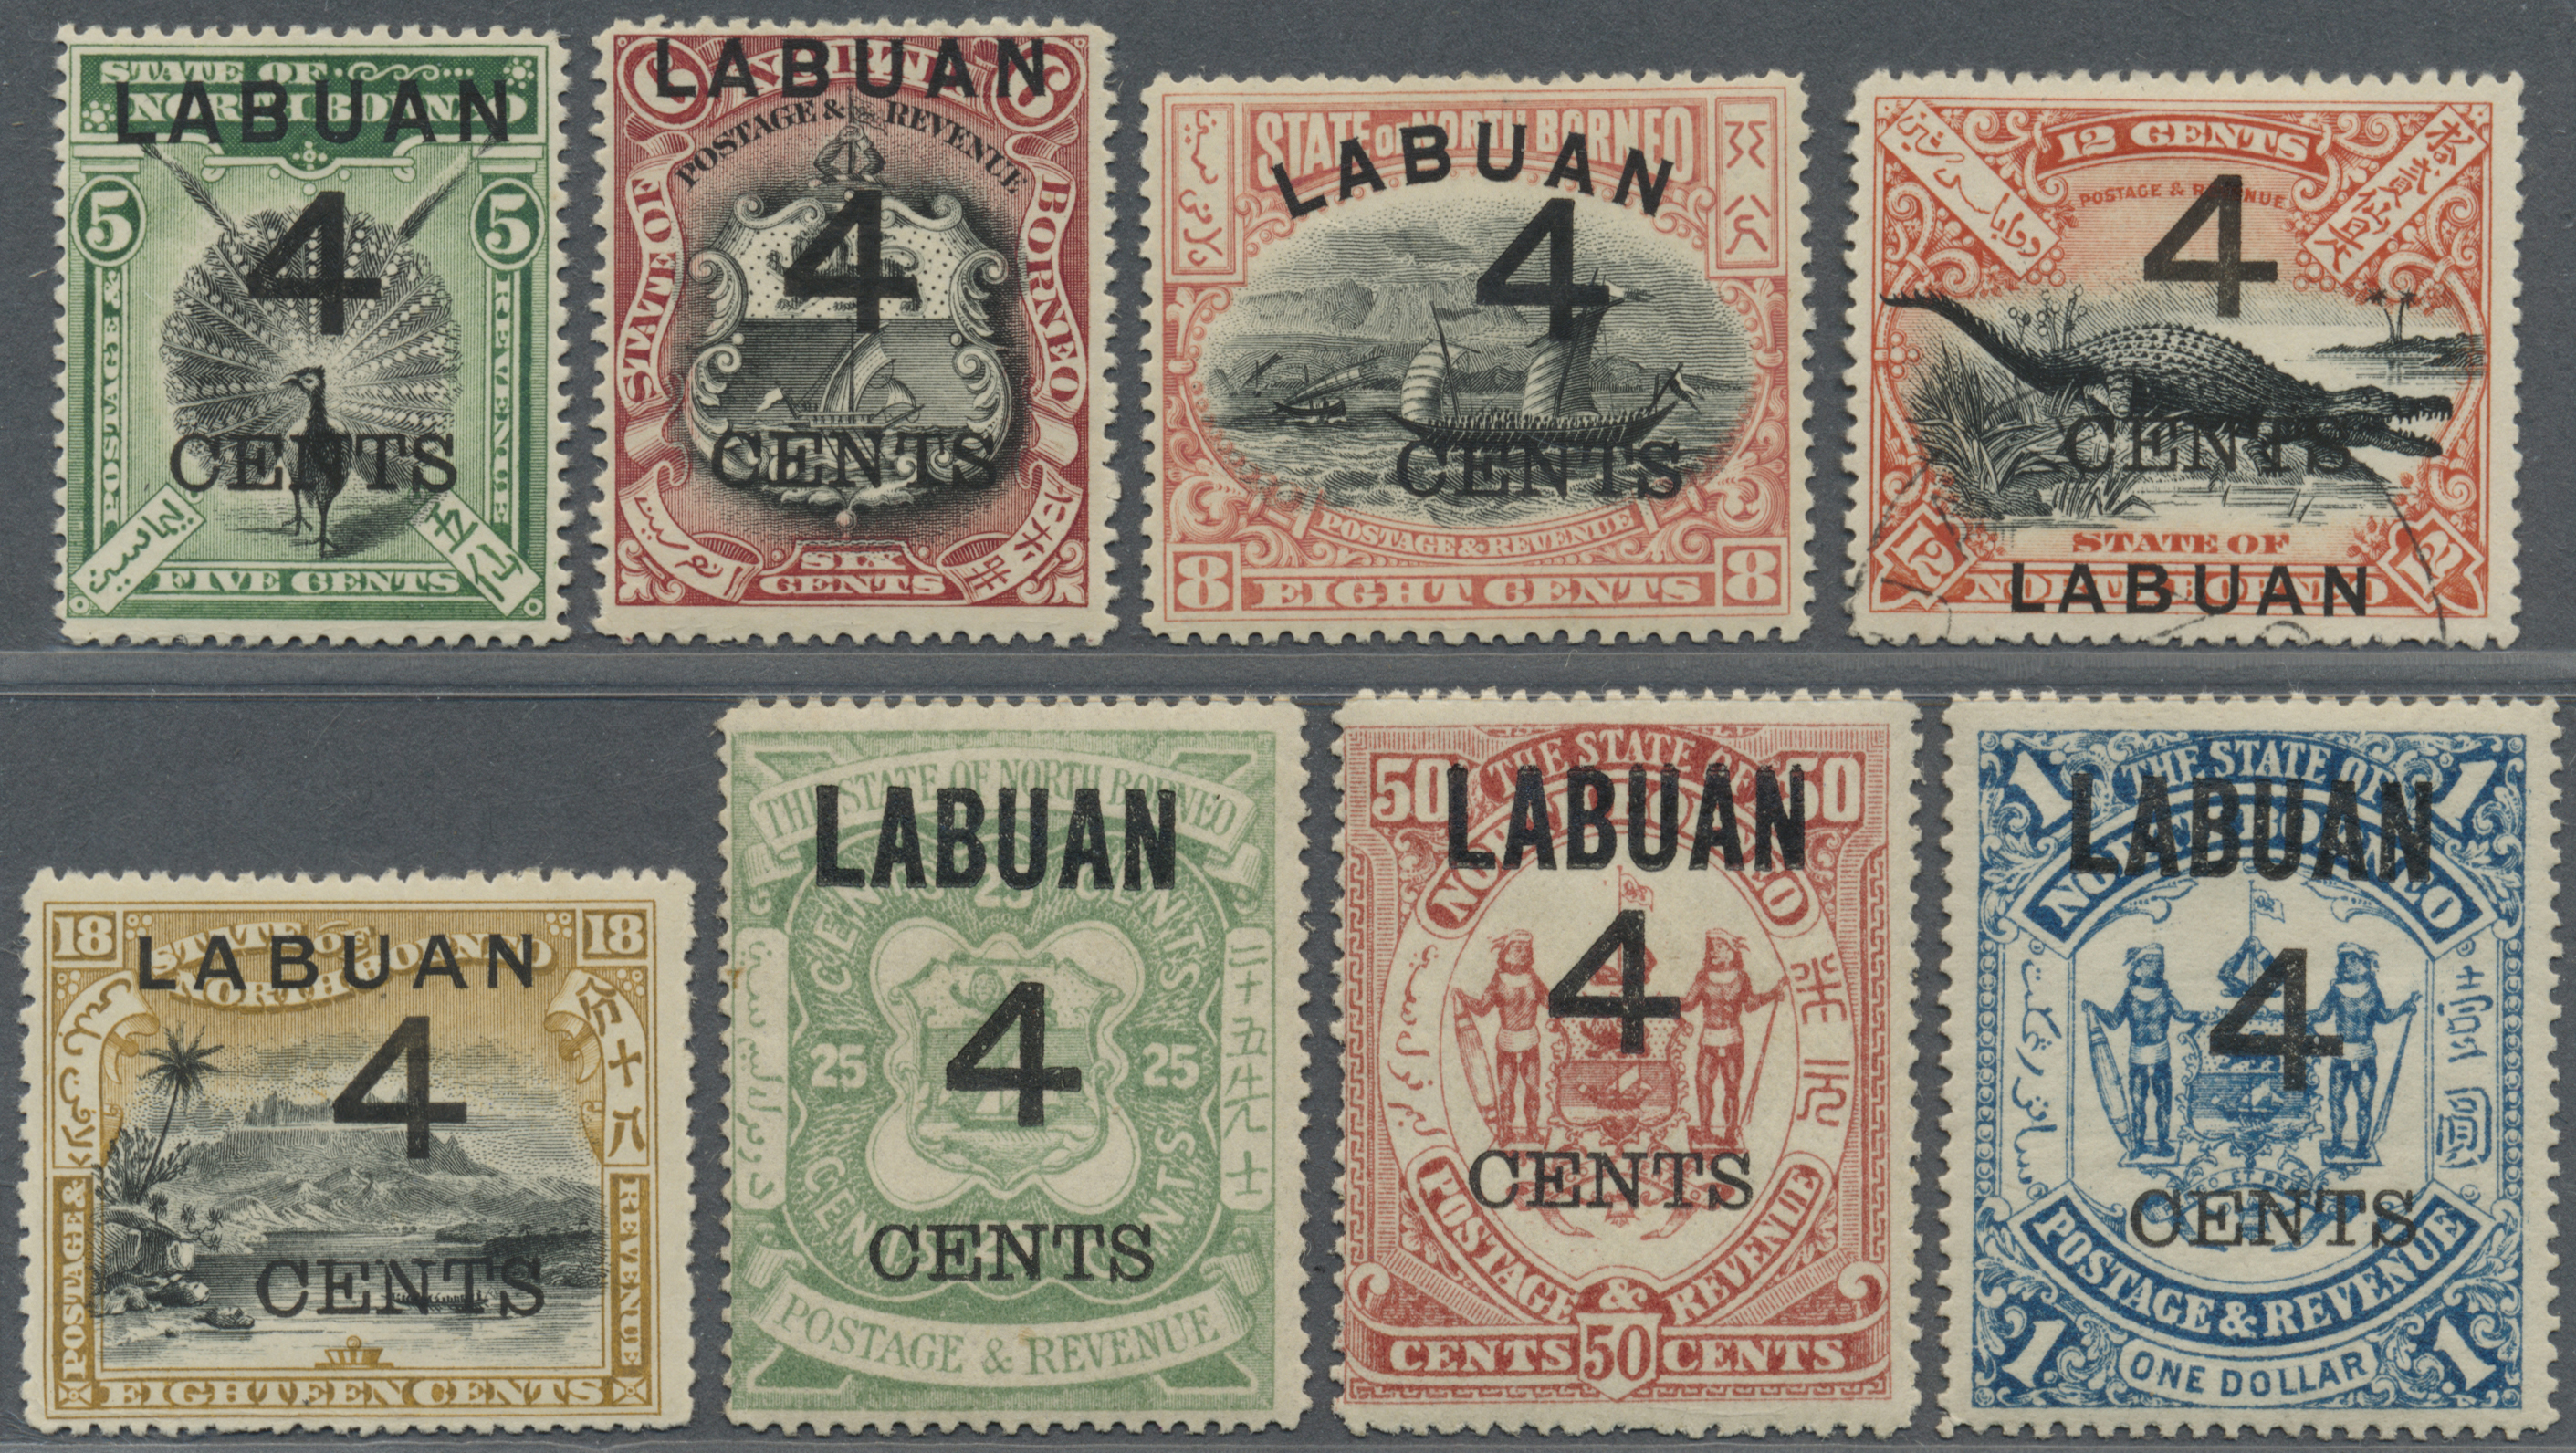 Lot 34560 - Labuan  -  Auktionshaus Christoph Gärtner GmbH & Co. KG Collections Germany,  Collections Supplement, Surprise boxes #39 Day 7